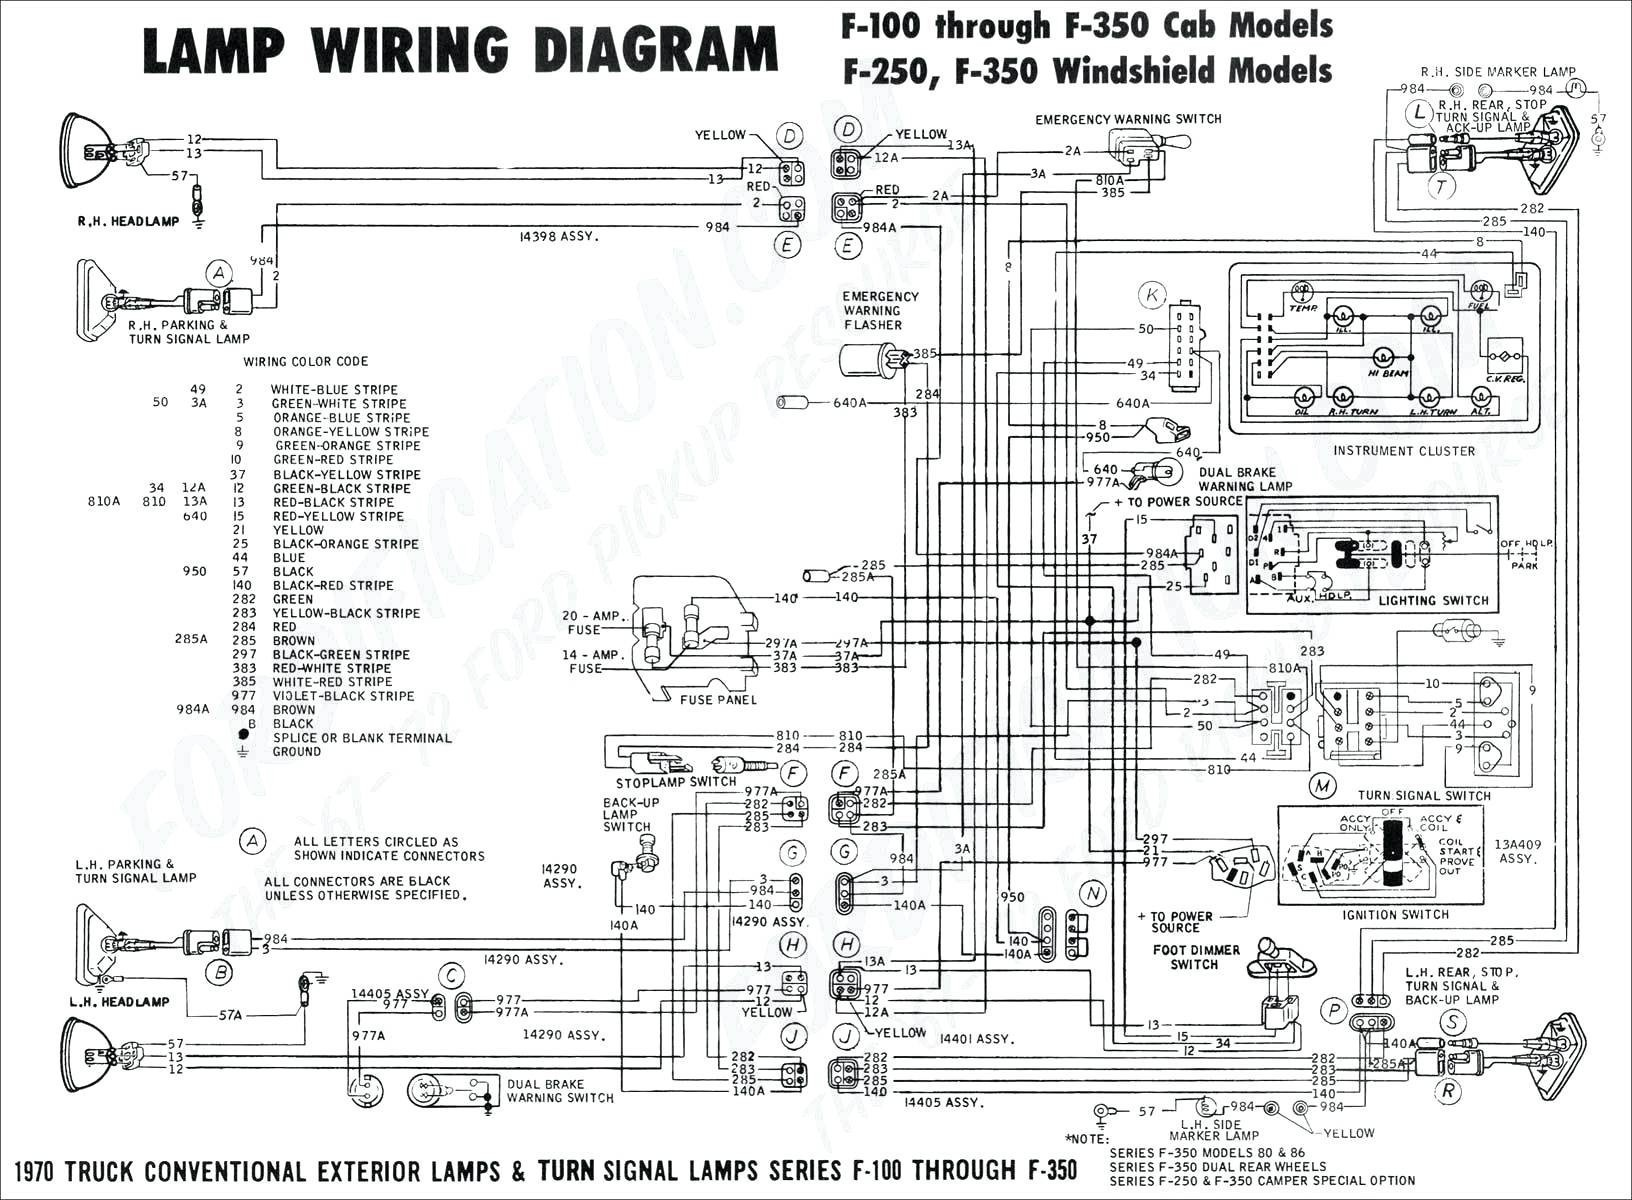 Remote Control Car Diagram Rc 10 Wiring Diagram Wiring Diagram Strategy Design Plan • Of Remote Control Car Diagram